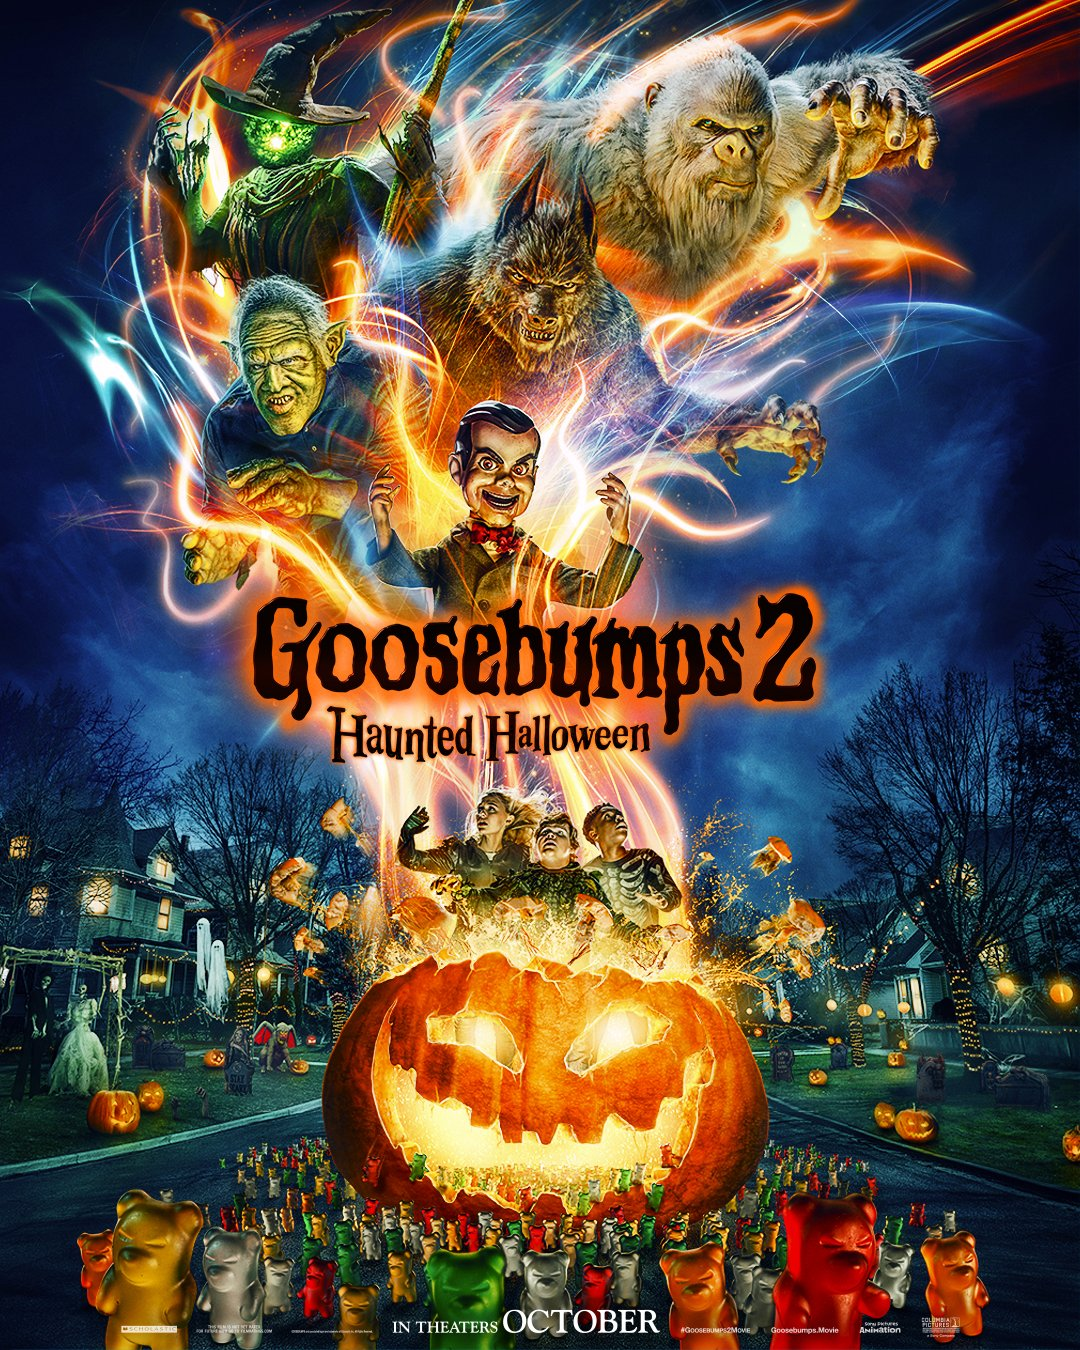 Halloween Thanksgiving Christmas Countdown.User Blog Nickthedummy Countdown To Goosebumps 2 Haunted